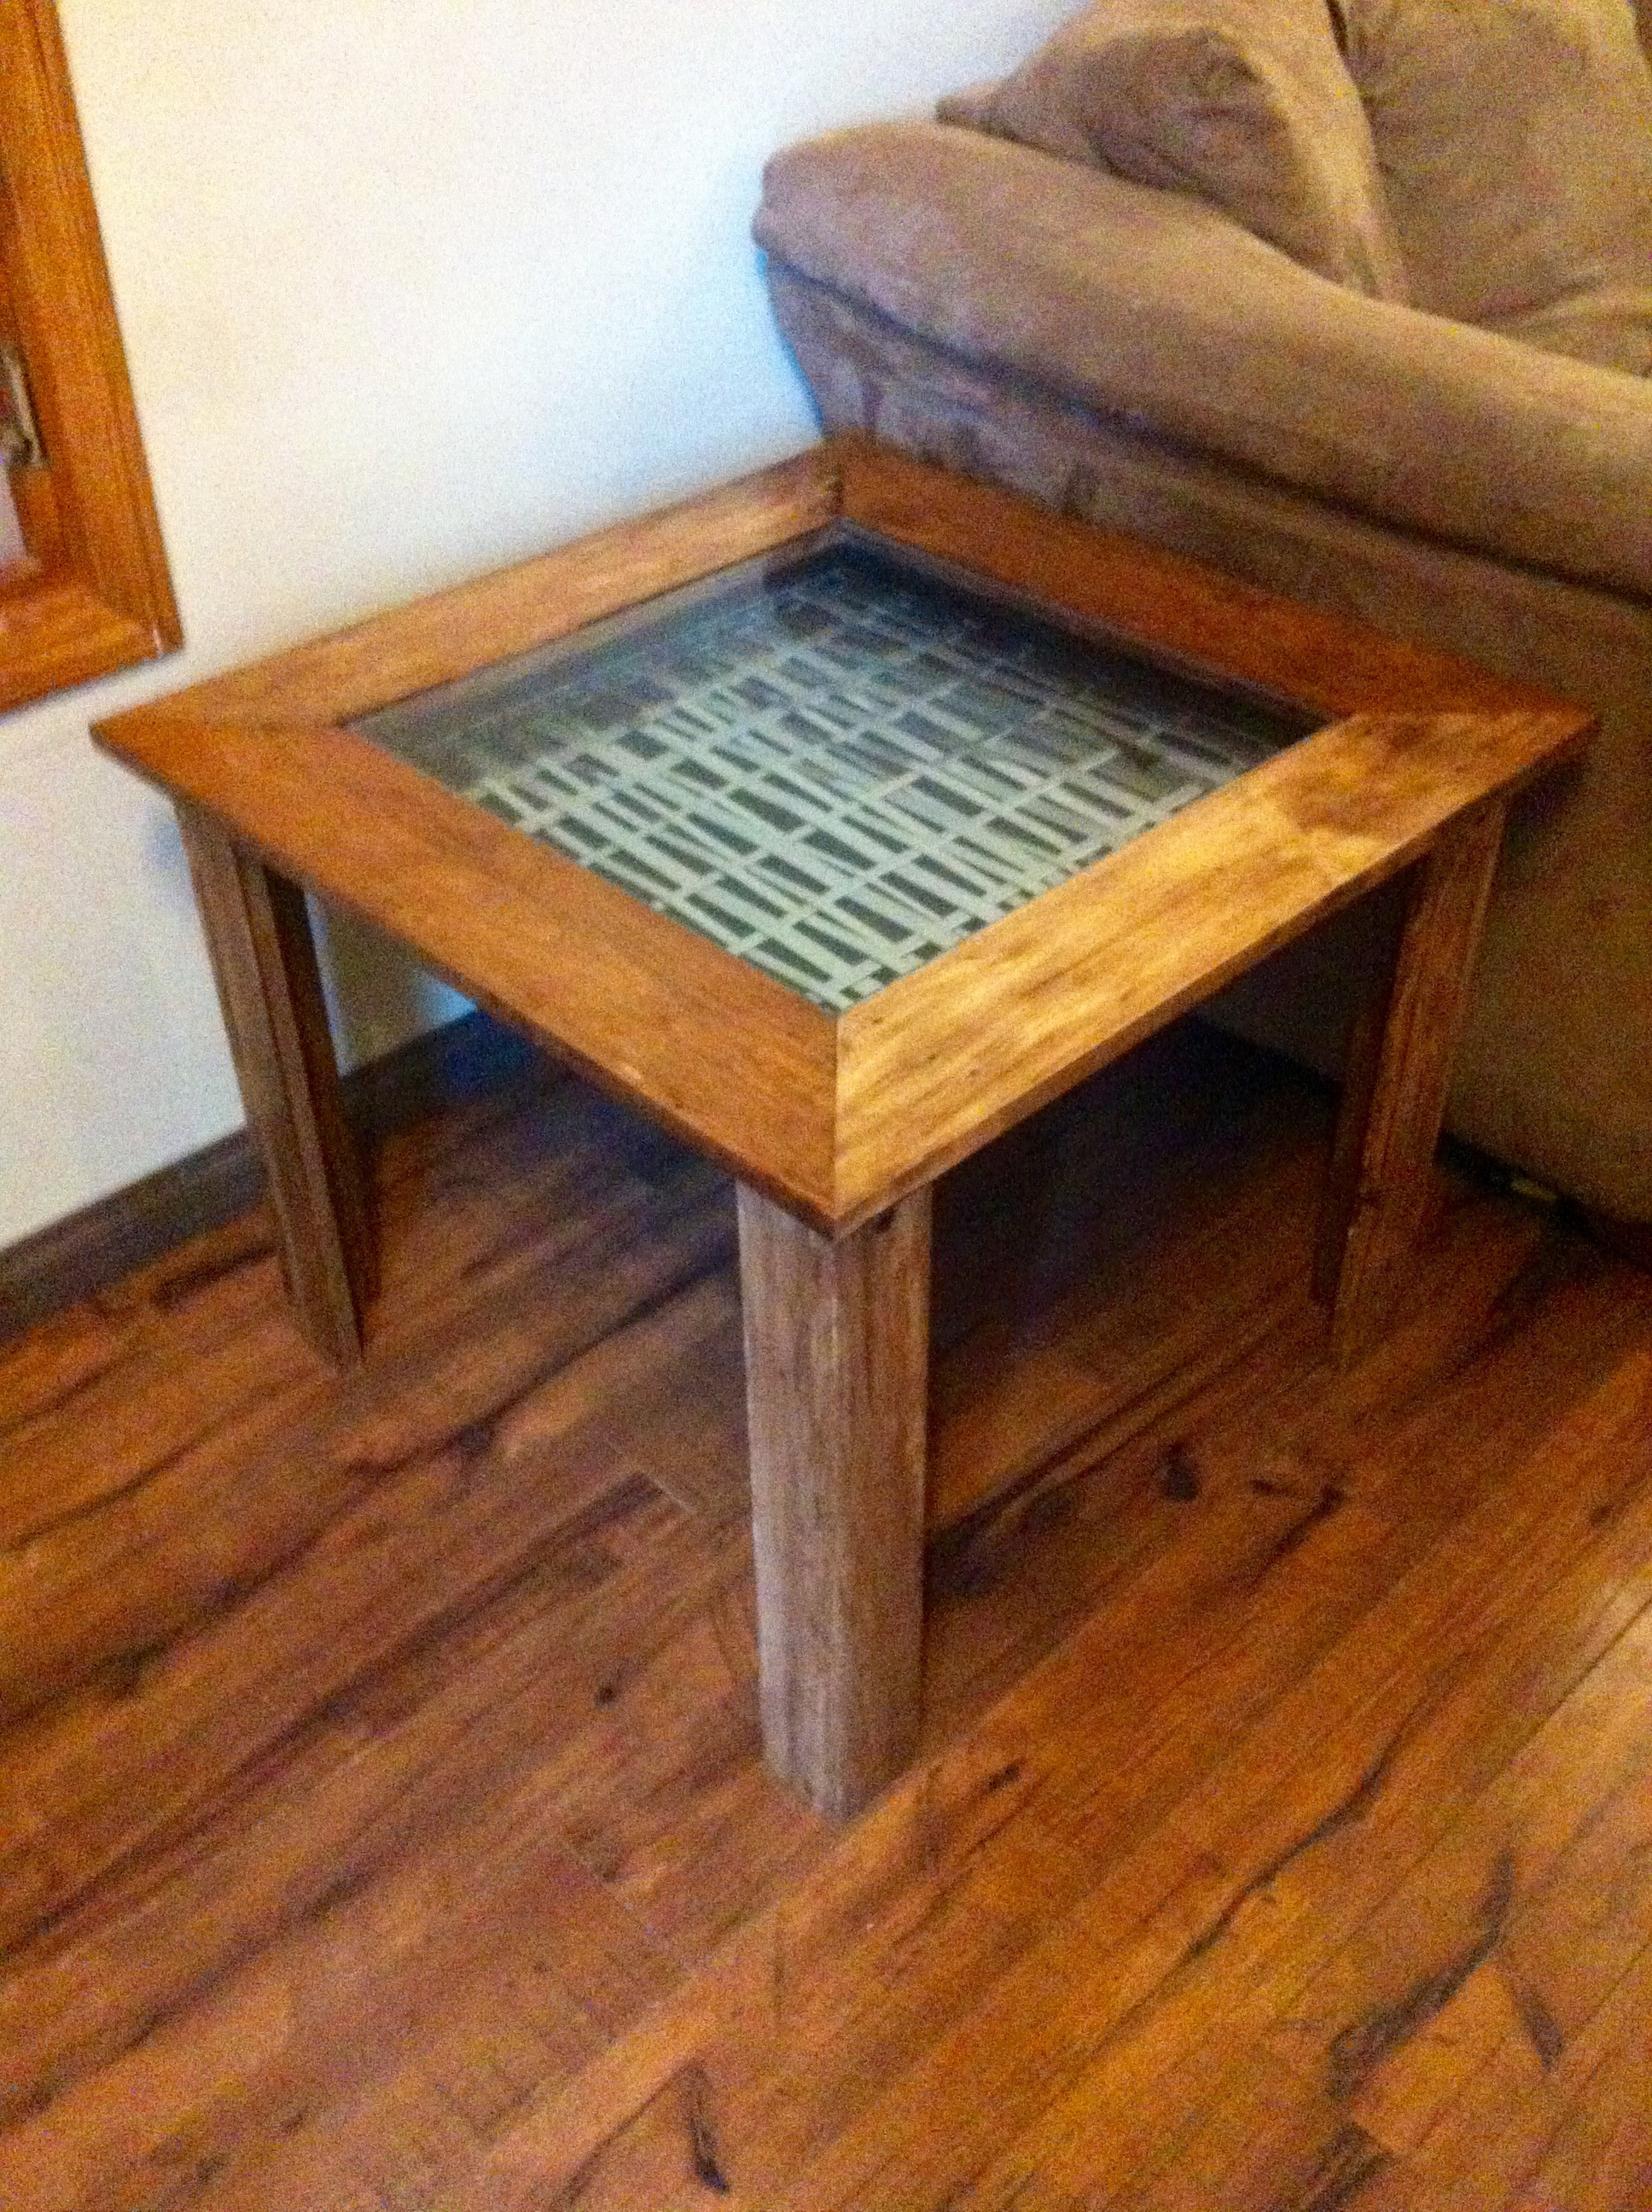 Reclaimed Pallet Wood End Table w/ Stainless Steel Weave insert